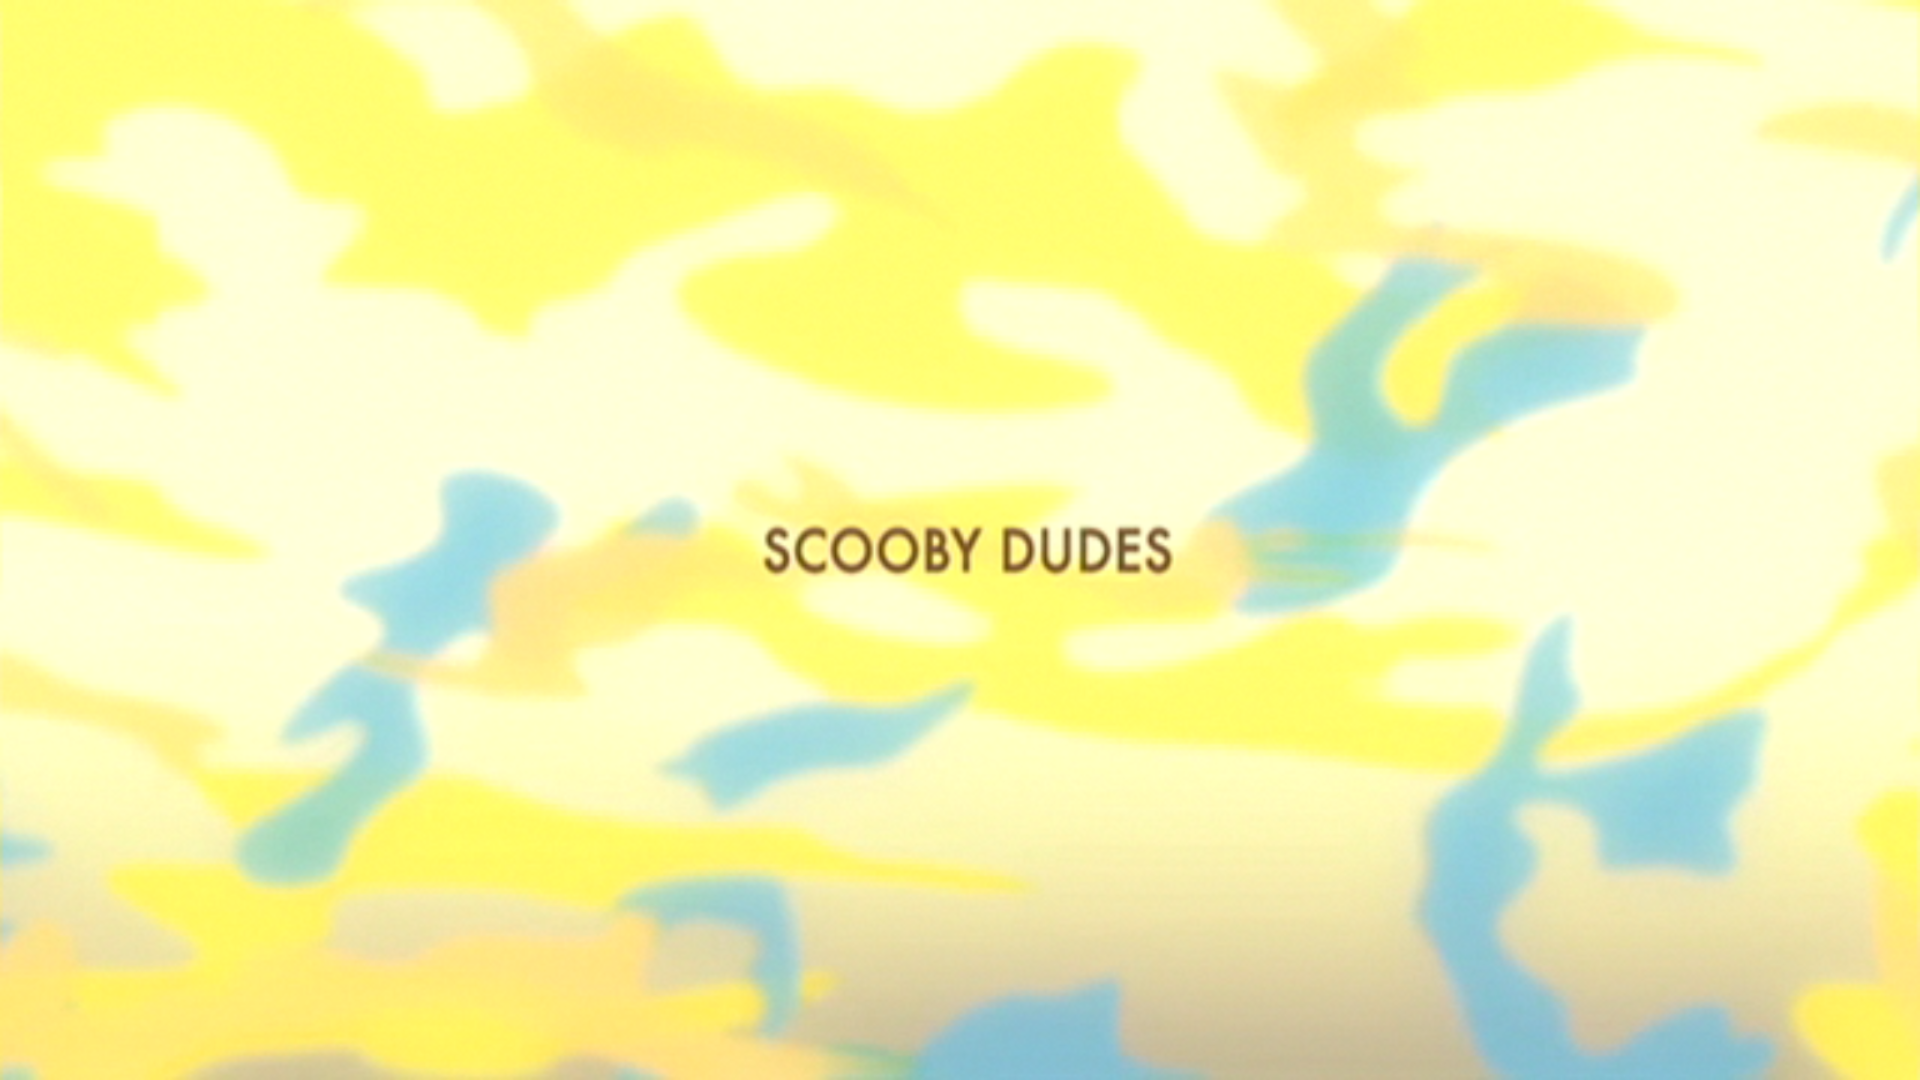 Scooby Dudes title card